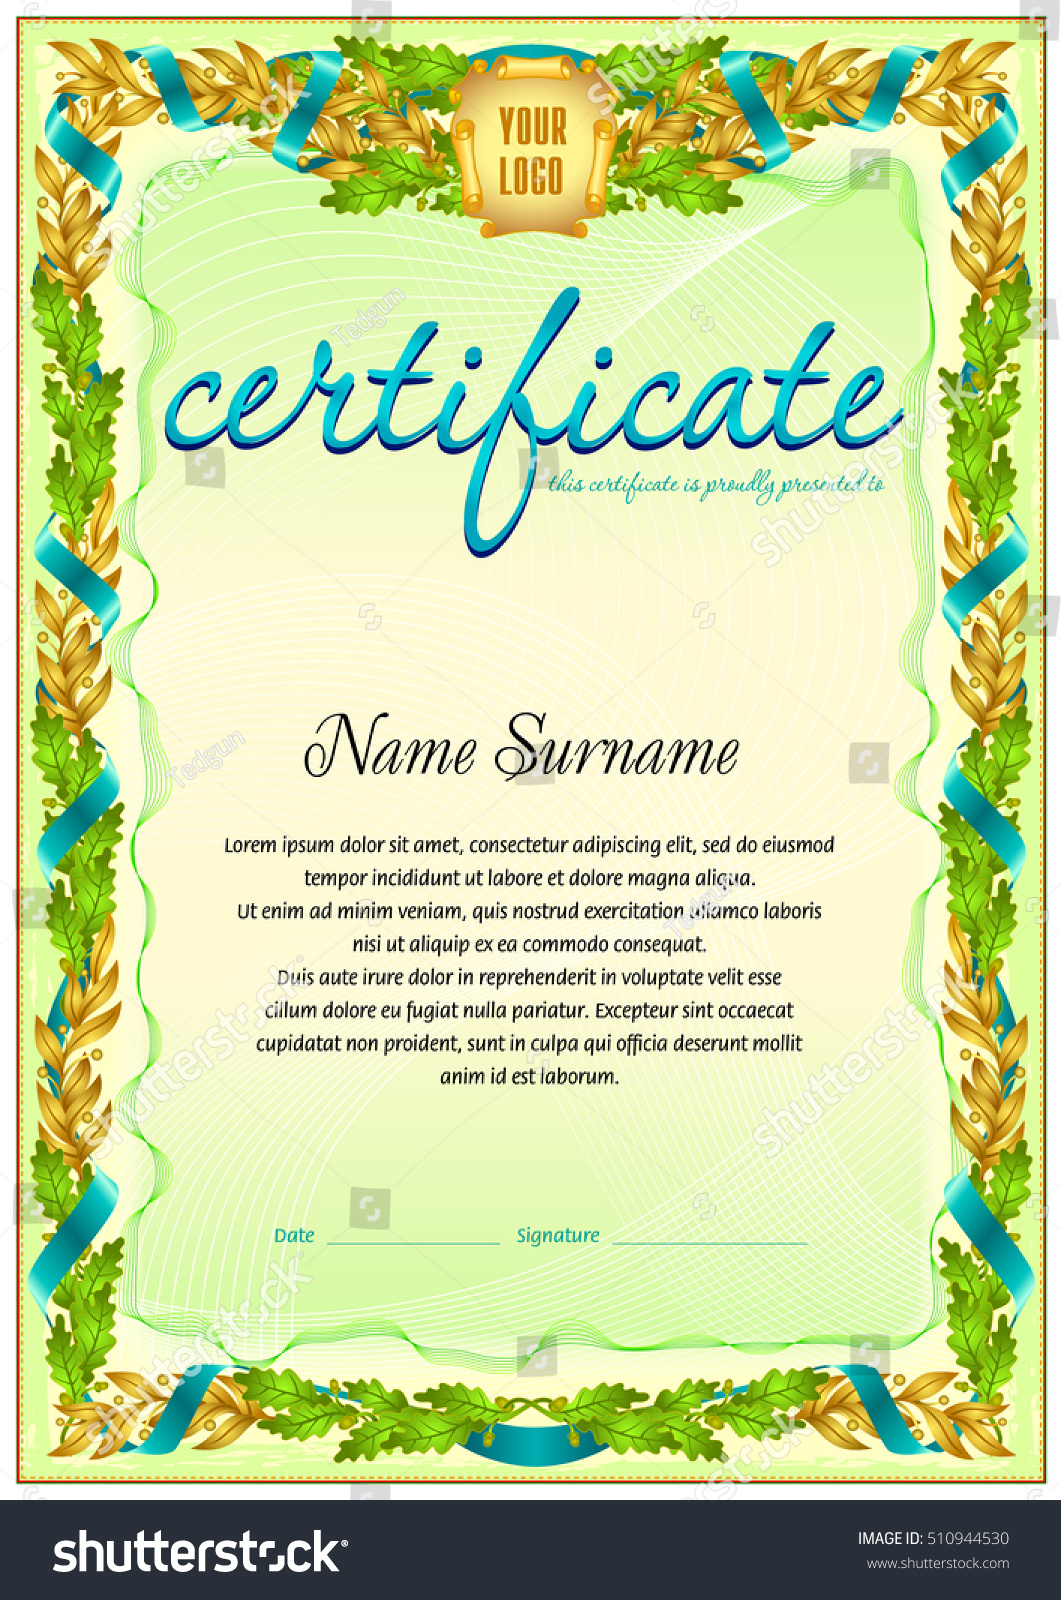 Royalty Free Vintage Certificate Template With 510944530 Stock